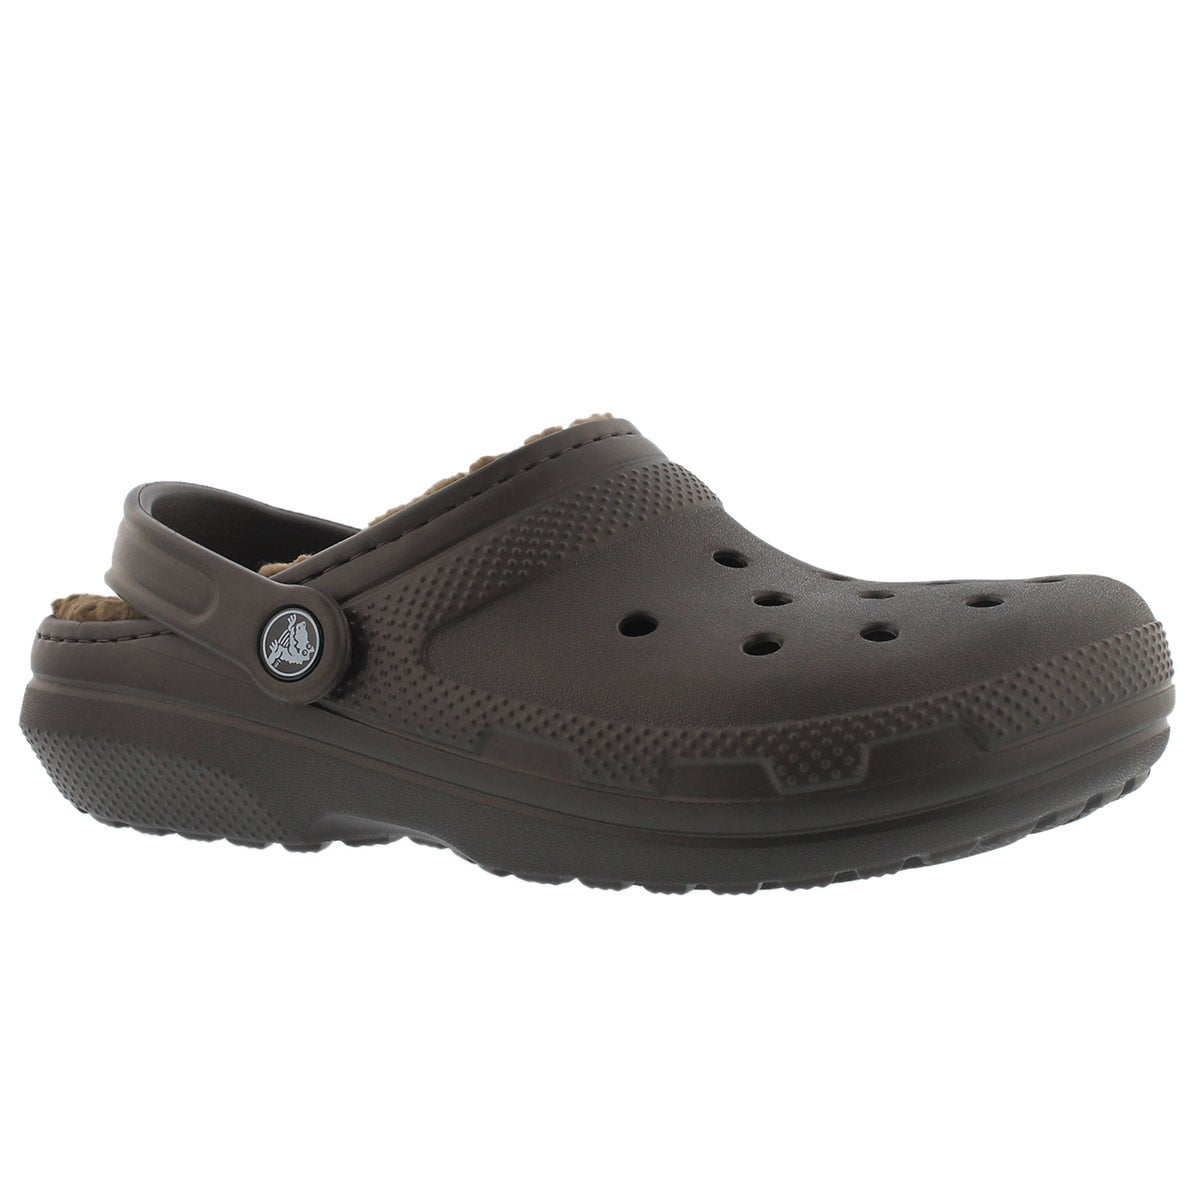 Women's CLASSIC LINED espresso comfort clogs